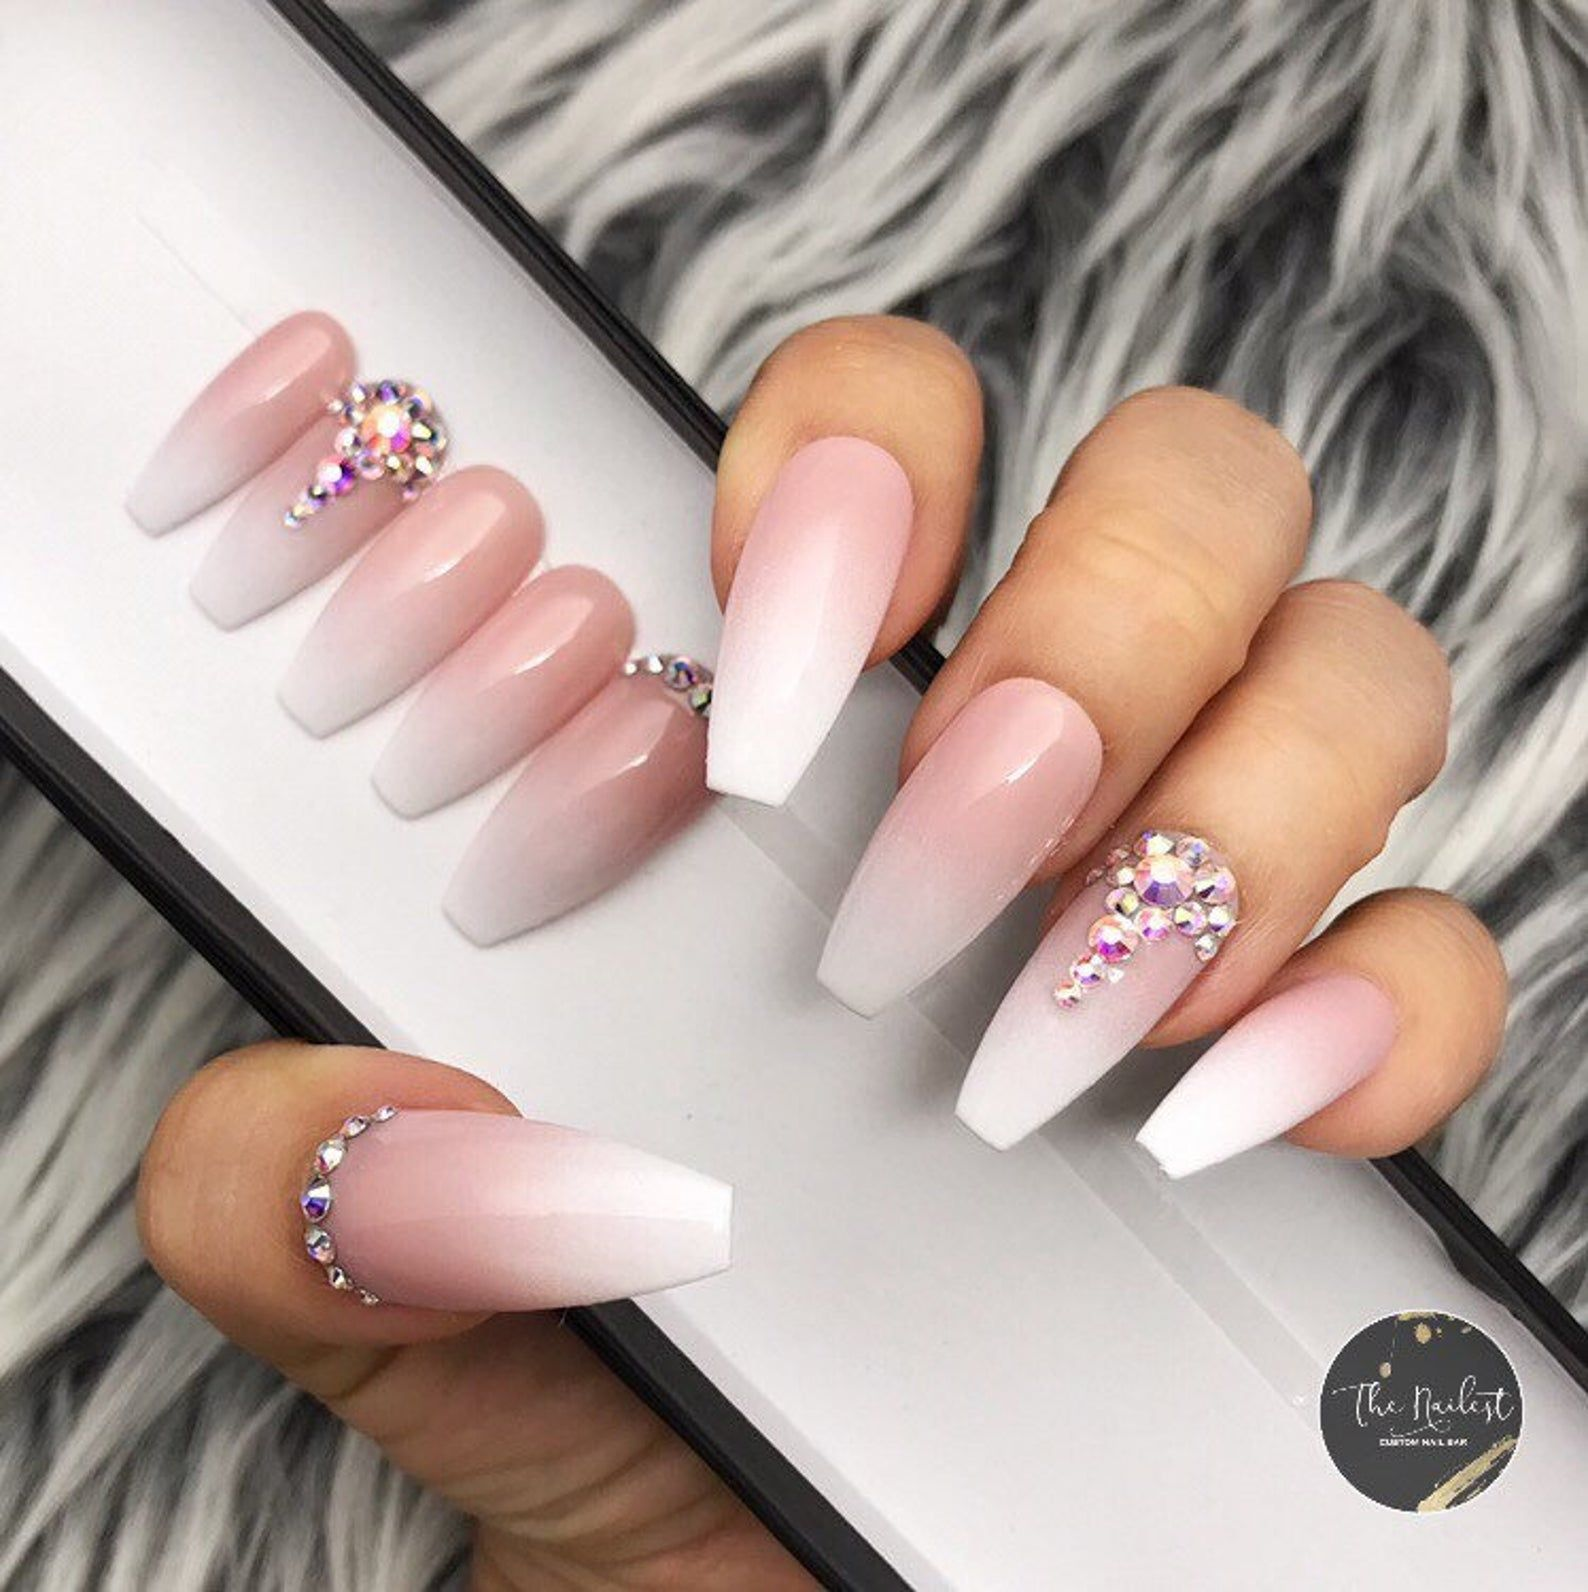 Triple B- Bling Baby Boomer Soph Ombre with Bling Crystals Press On Nails | Any Shape | Fake Nails | False Nails | Glue On Nails